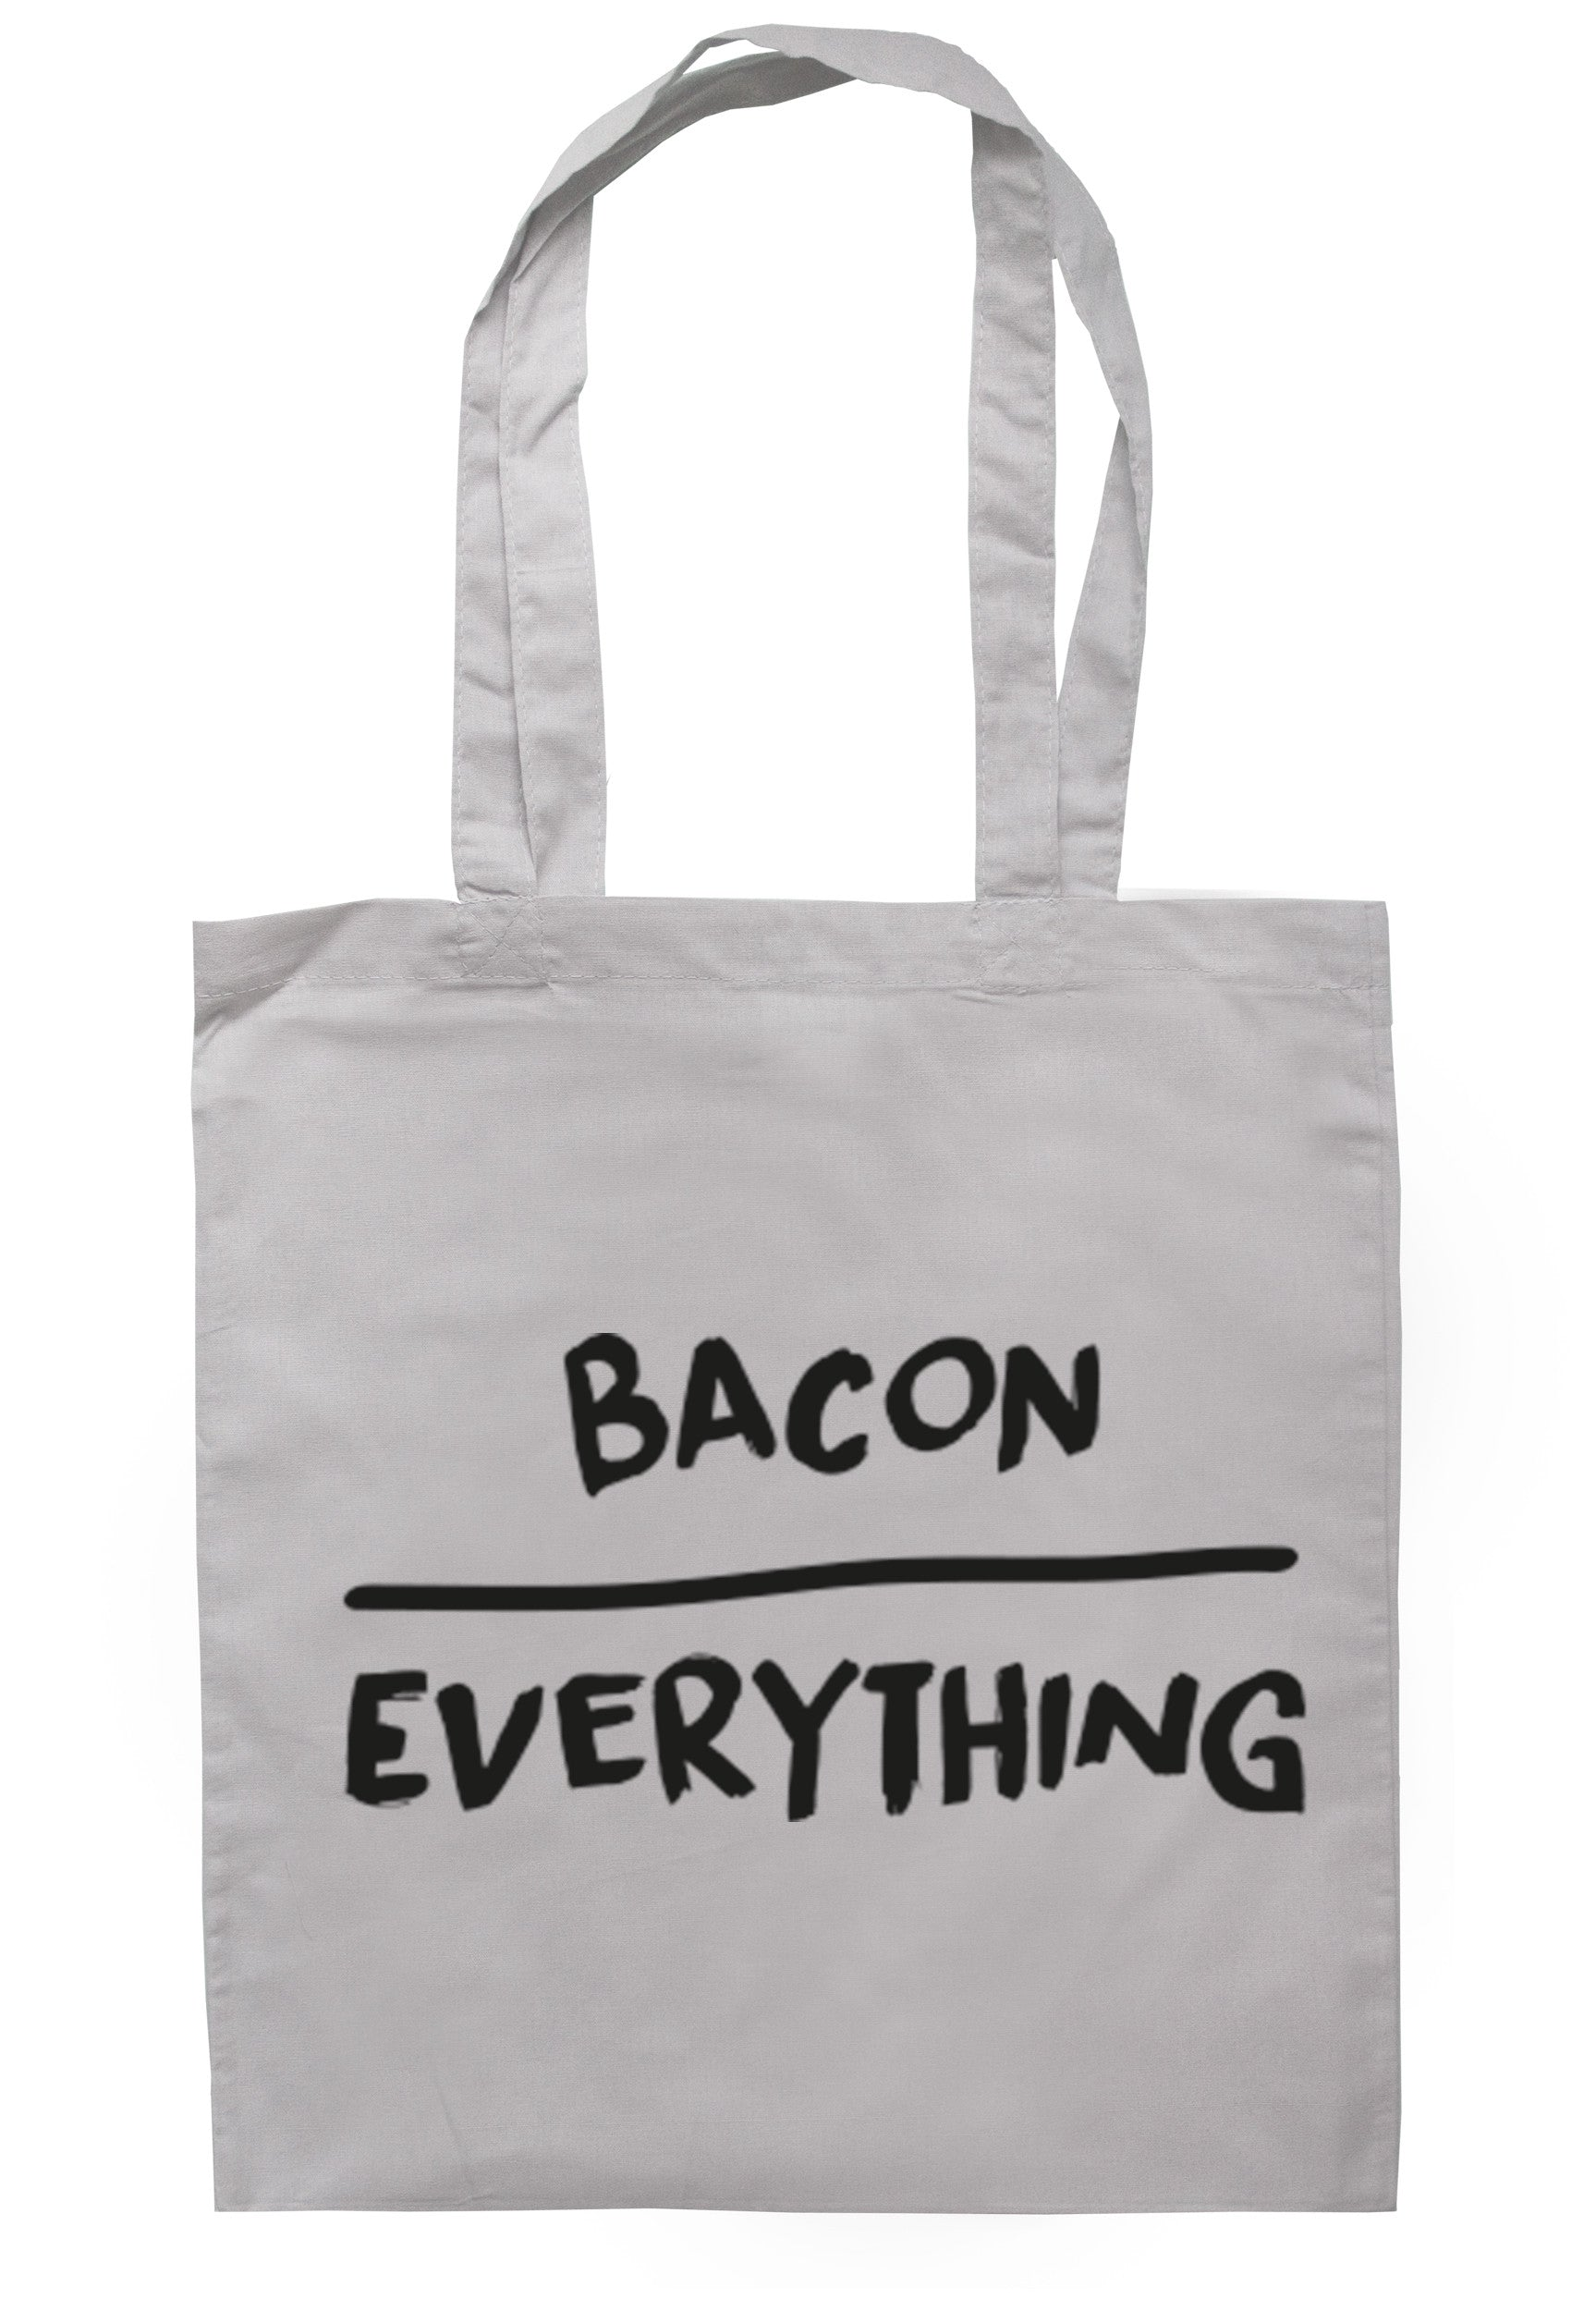 Bacon Over Everything Tote Bag TB0116 - Illustrated Identity Ltd.